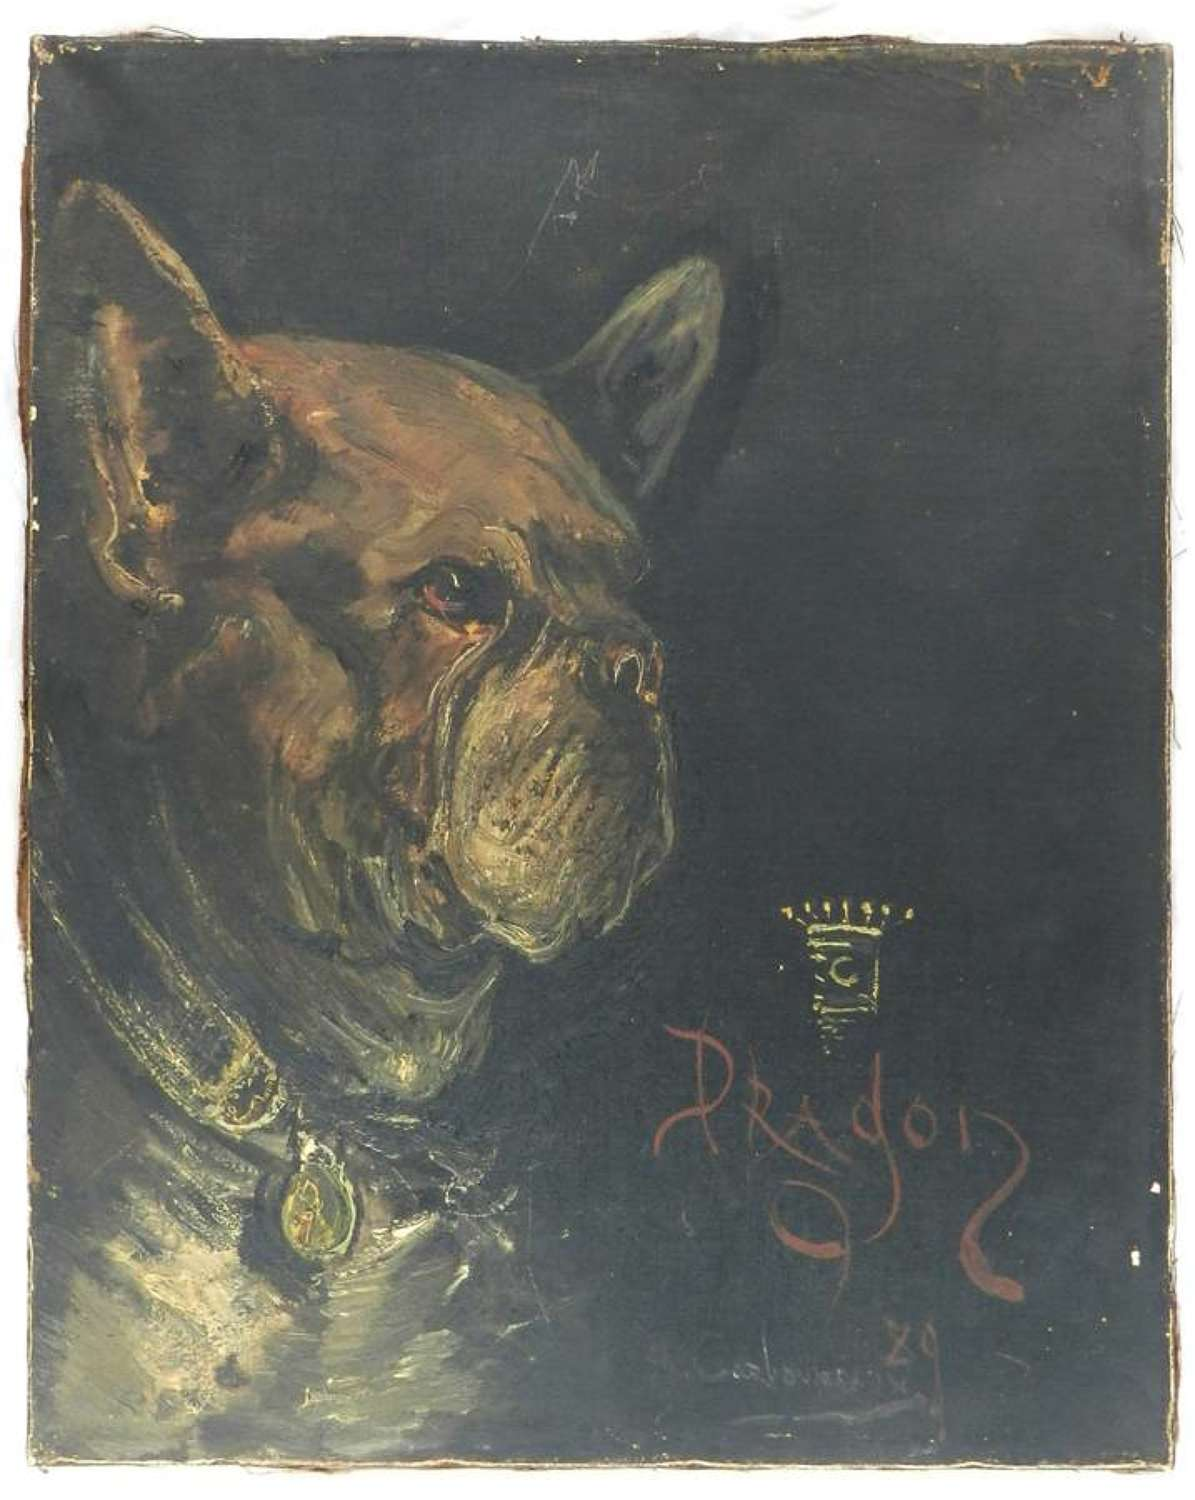 Portrait of a Dog called Dragon Oil Painting signed and dated 1929